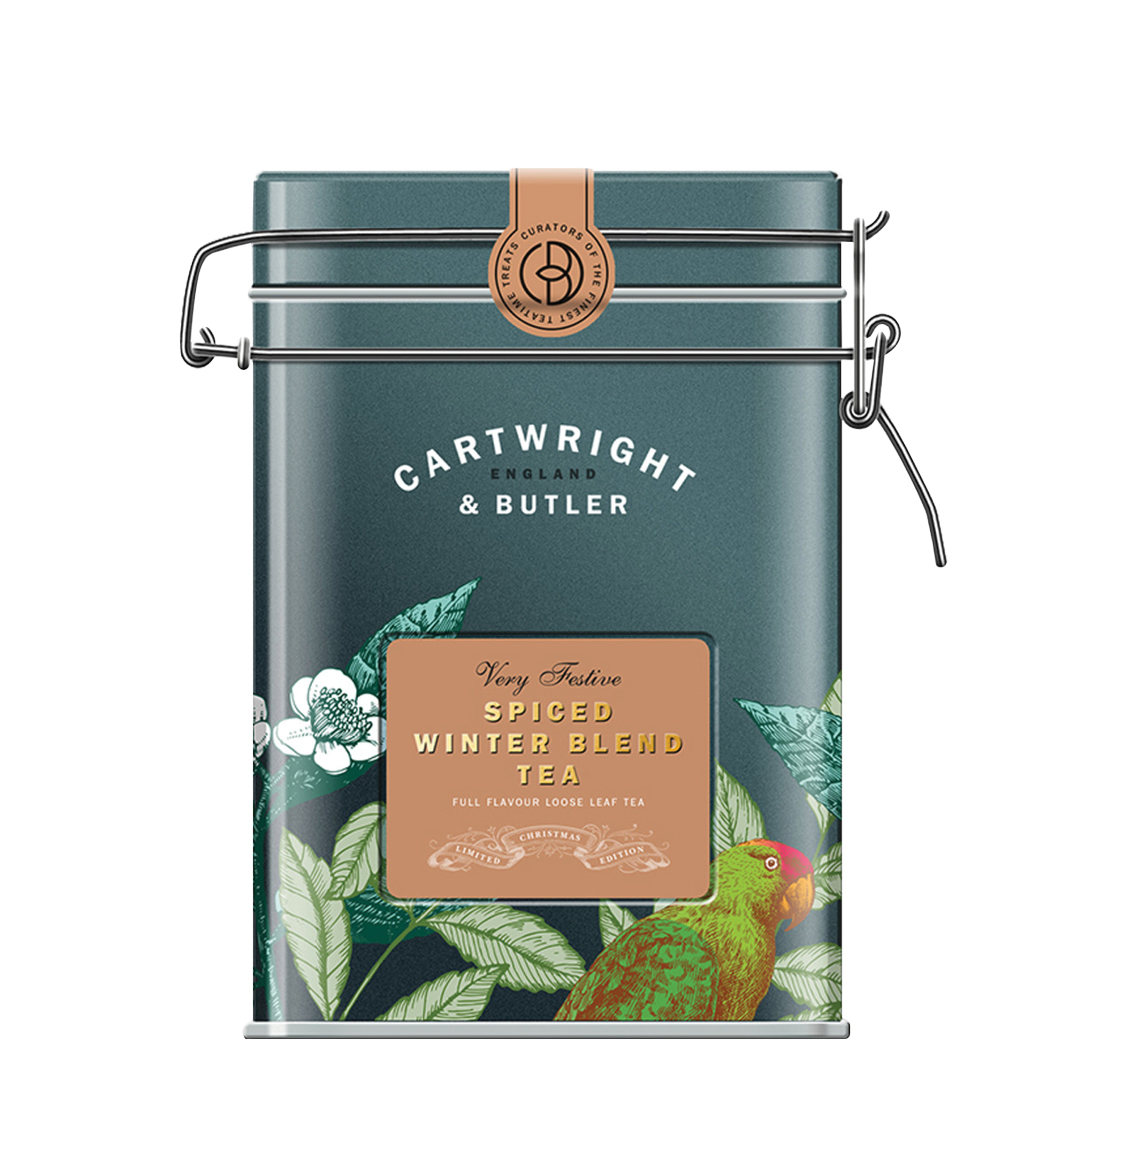 Cartwright_And_Butler_Spiced_Winter_Blend_Tea_The_Project_Garments_A